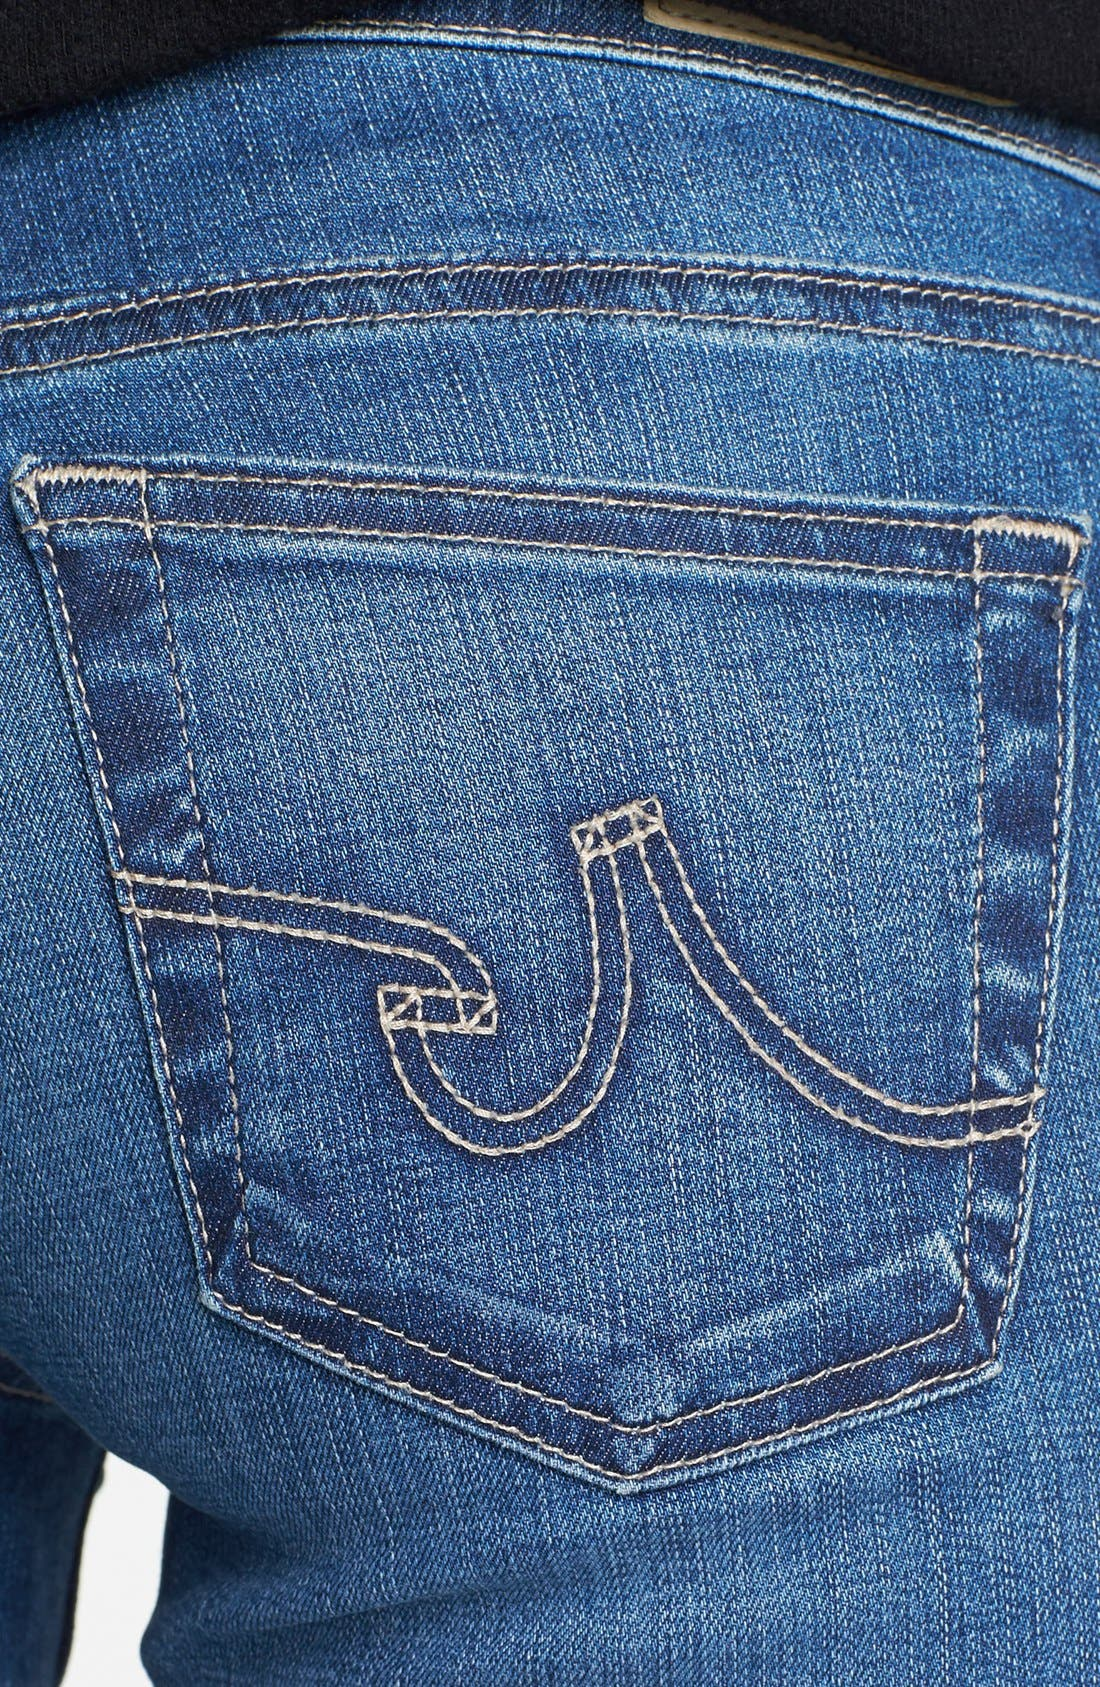 'The Stilt' Cigarette Leg Jeans,                             Alternate thumbnail 3, color,                             Eleven Year Journey